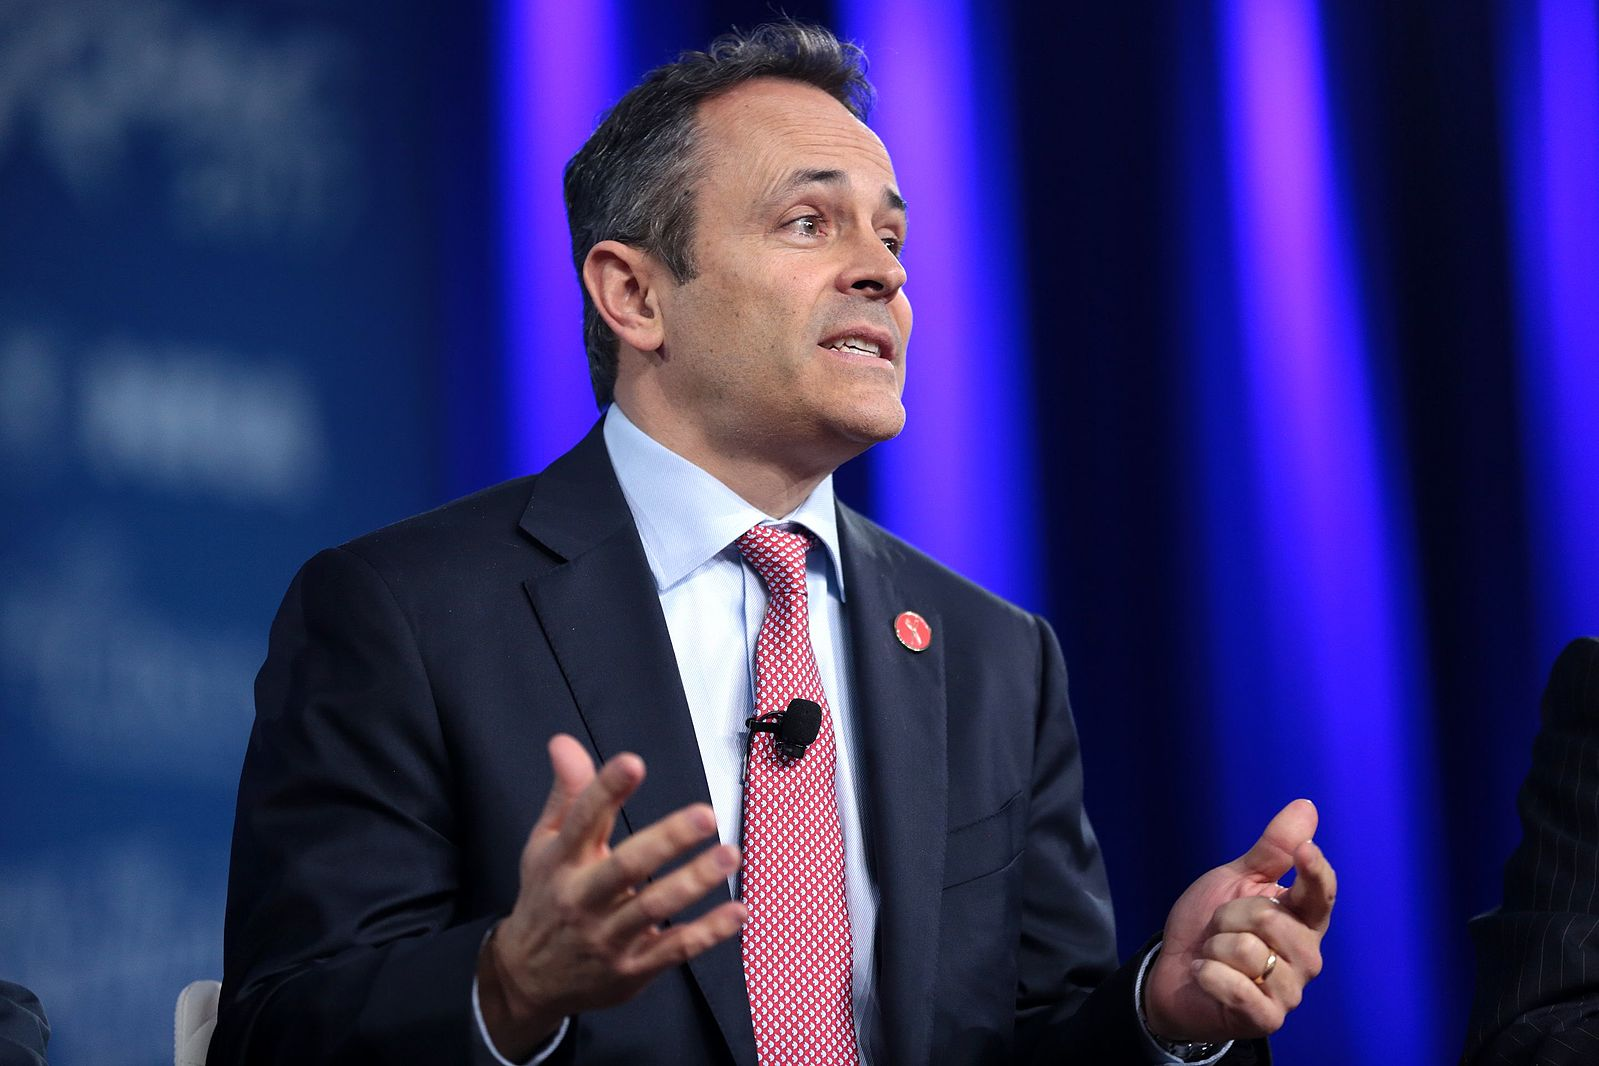 Federal judge dismisses Kentucky governor's lawsuit against Medicaid recipients